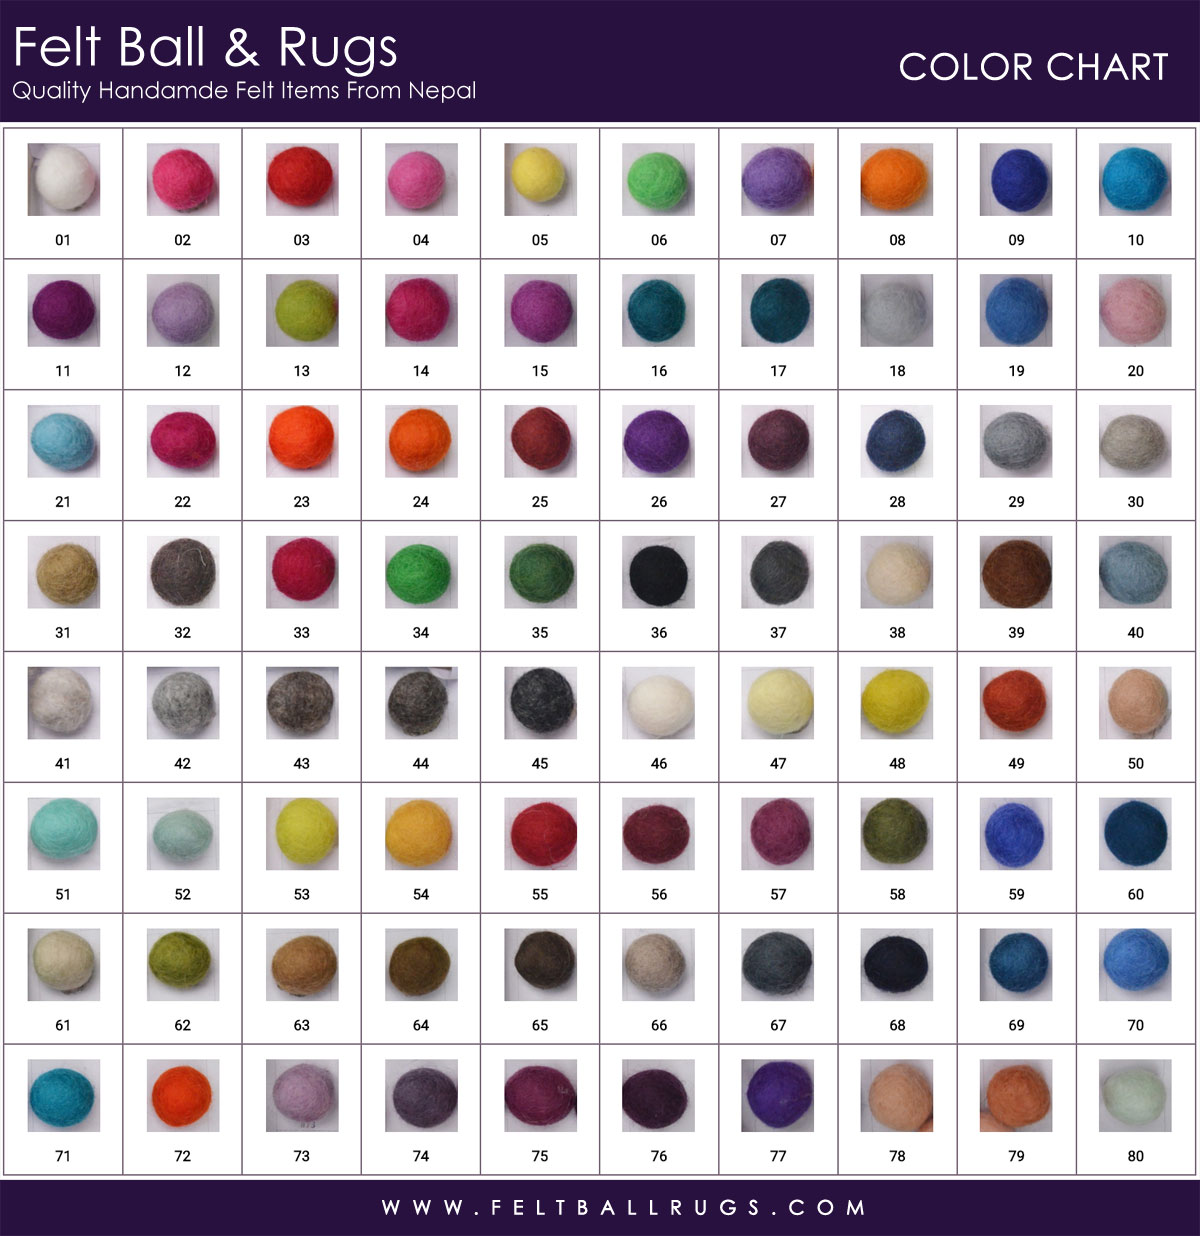 Color Chart - Felt Ball & Rugs